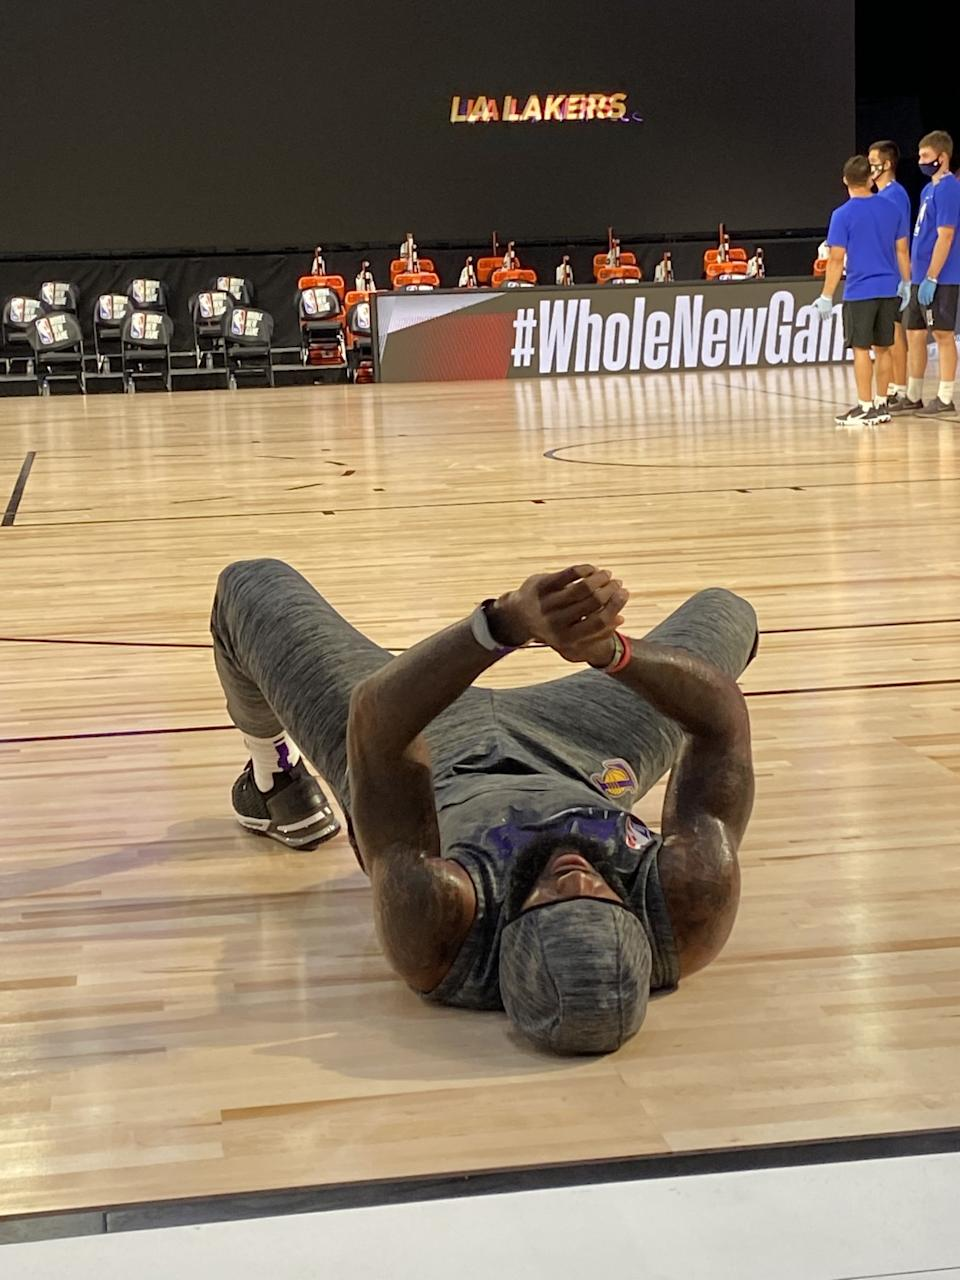 Lakers star LeBron James, while wearing his MagicBand, stretches before a game in the NBA bubble in Orlando.